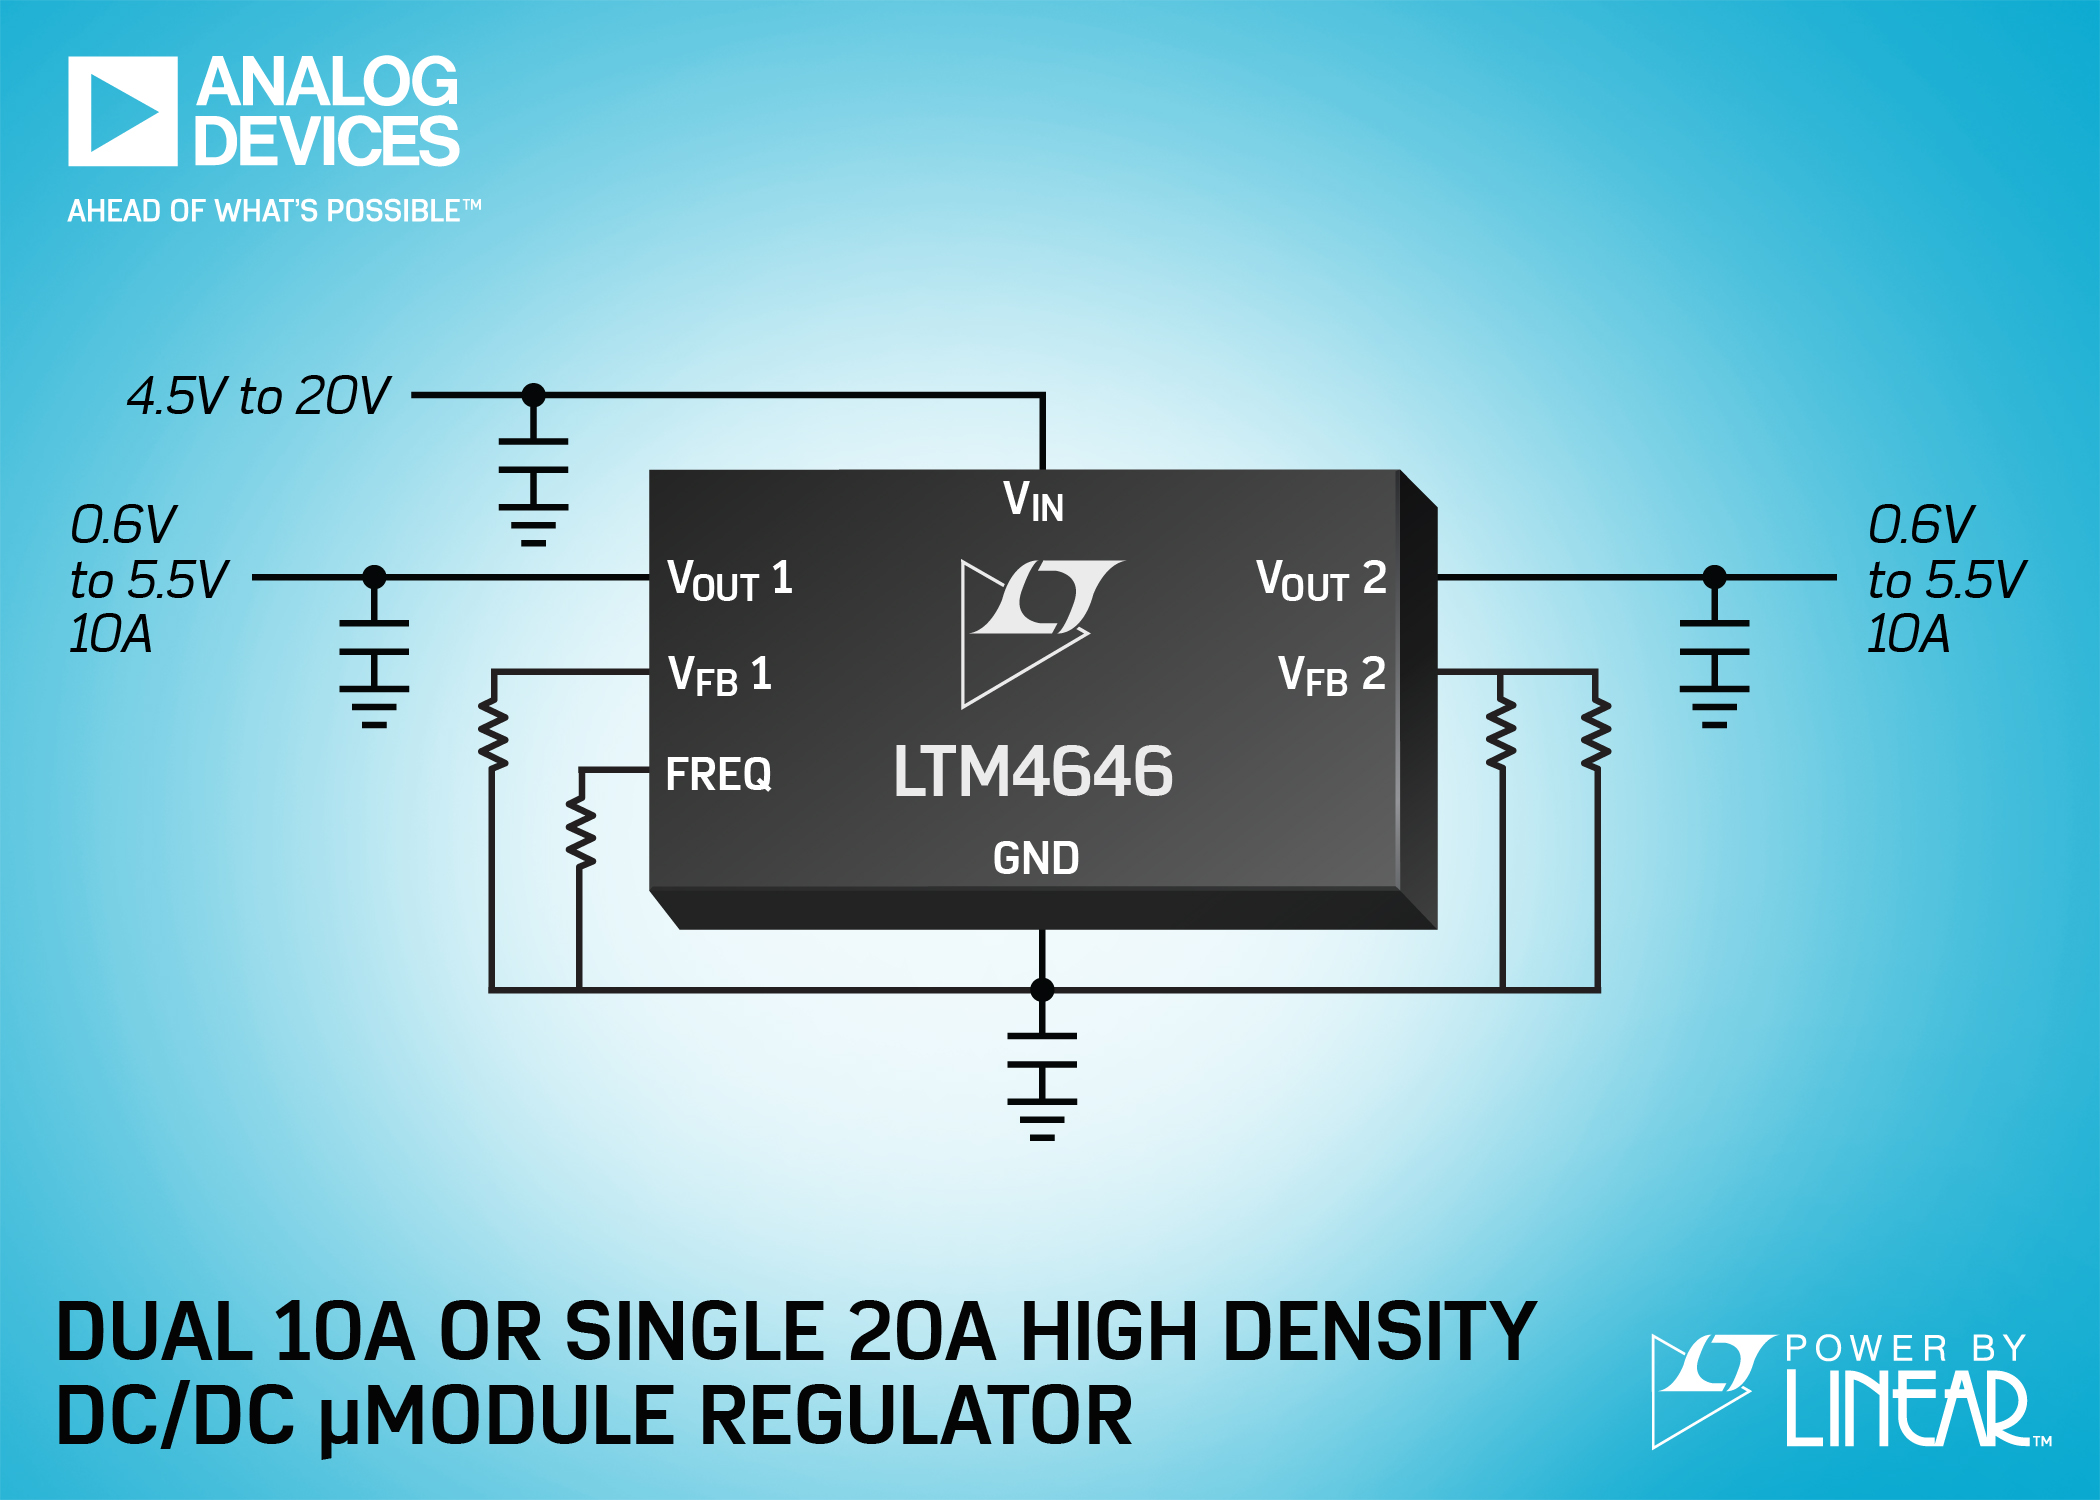 Compact Dual 10A or Single 20A μModule Regulator Powers FPGAs, GPUs, ASICs, & System Power